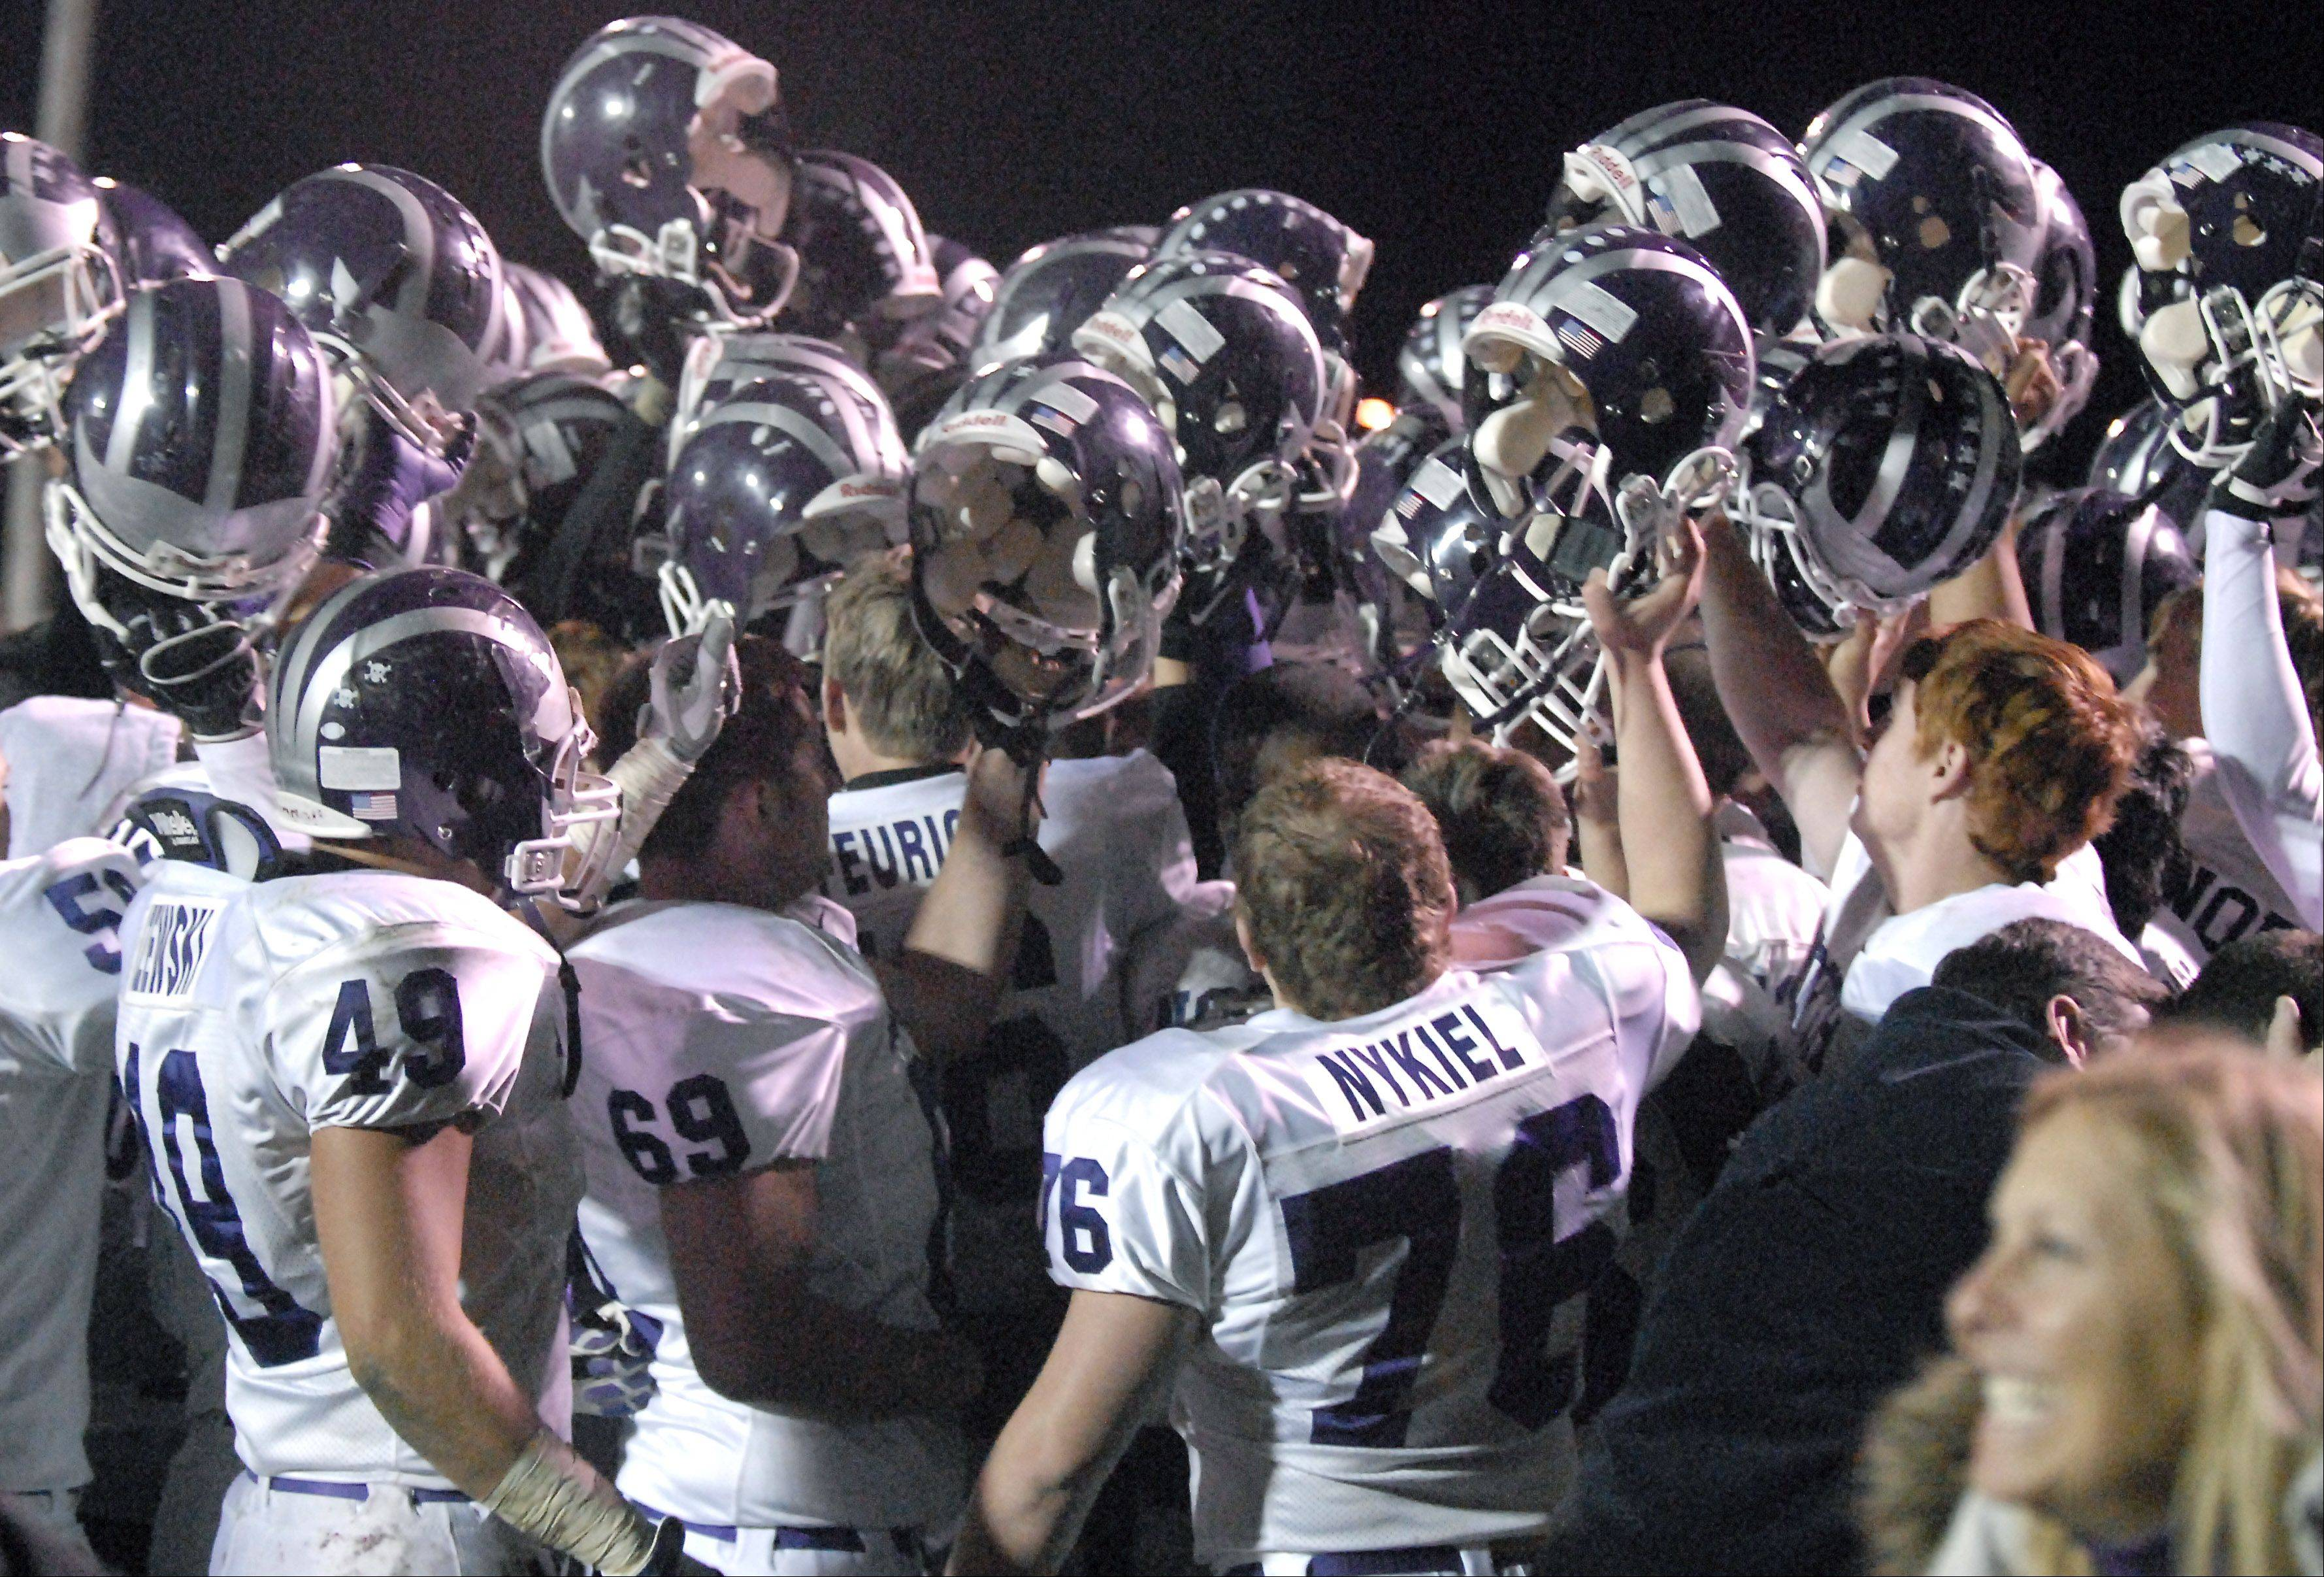 Downers Grove North's celebrates their playoff win over Batavia on Friday, October 26.